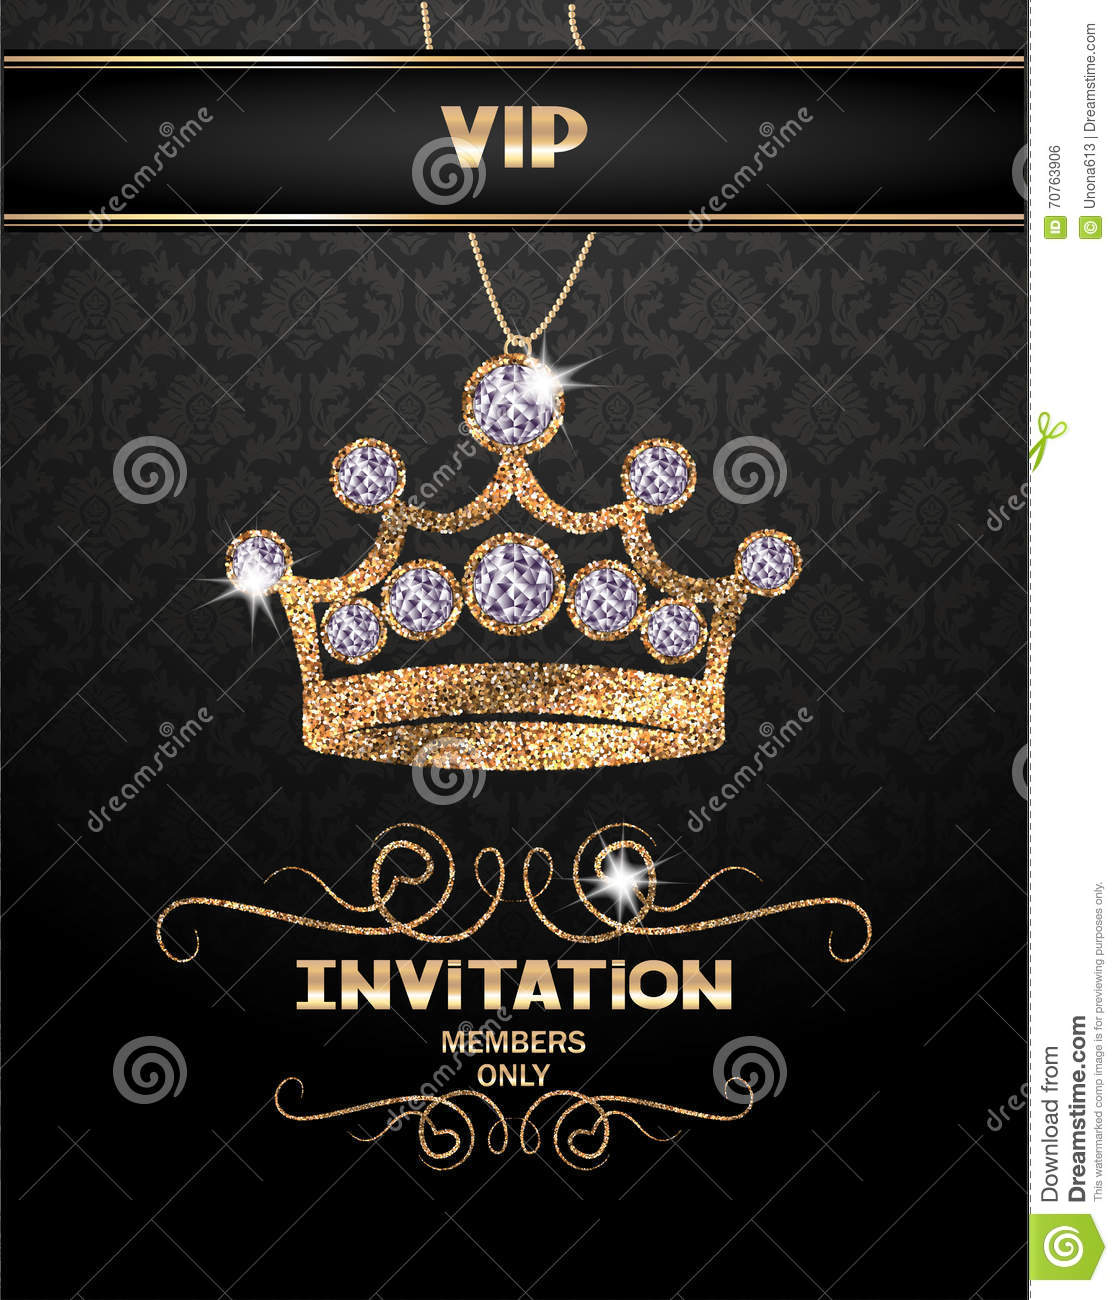 Vip invitation card with abstract sparkling crown with diamonds vip invitation card with abstract sparkling crown with diamonds stopboris Image collections